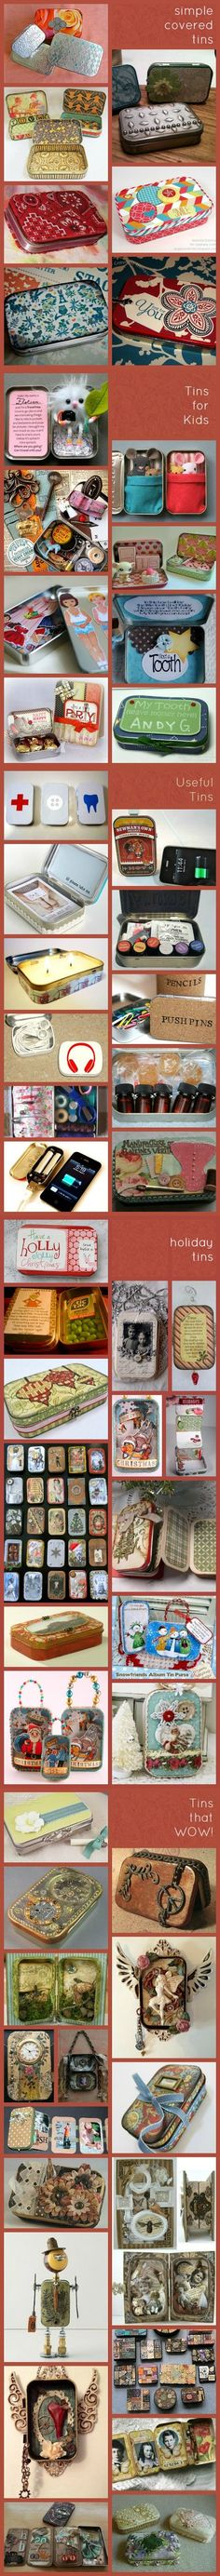 Reuses for Altoid tins - fun little projects  :-)  #DIY #repurpose